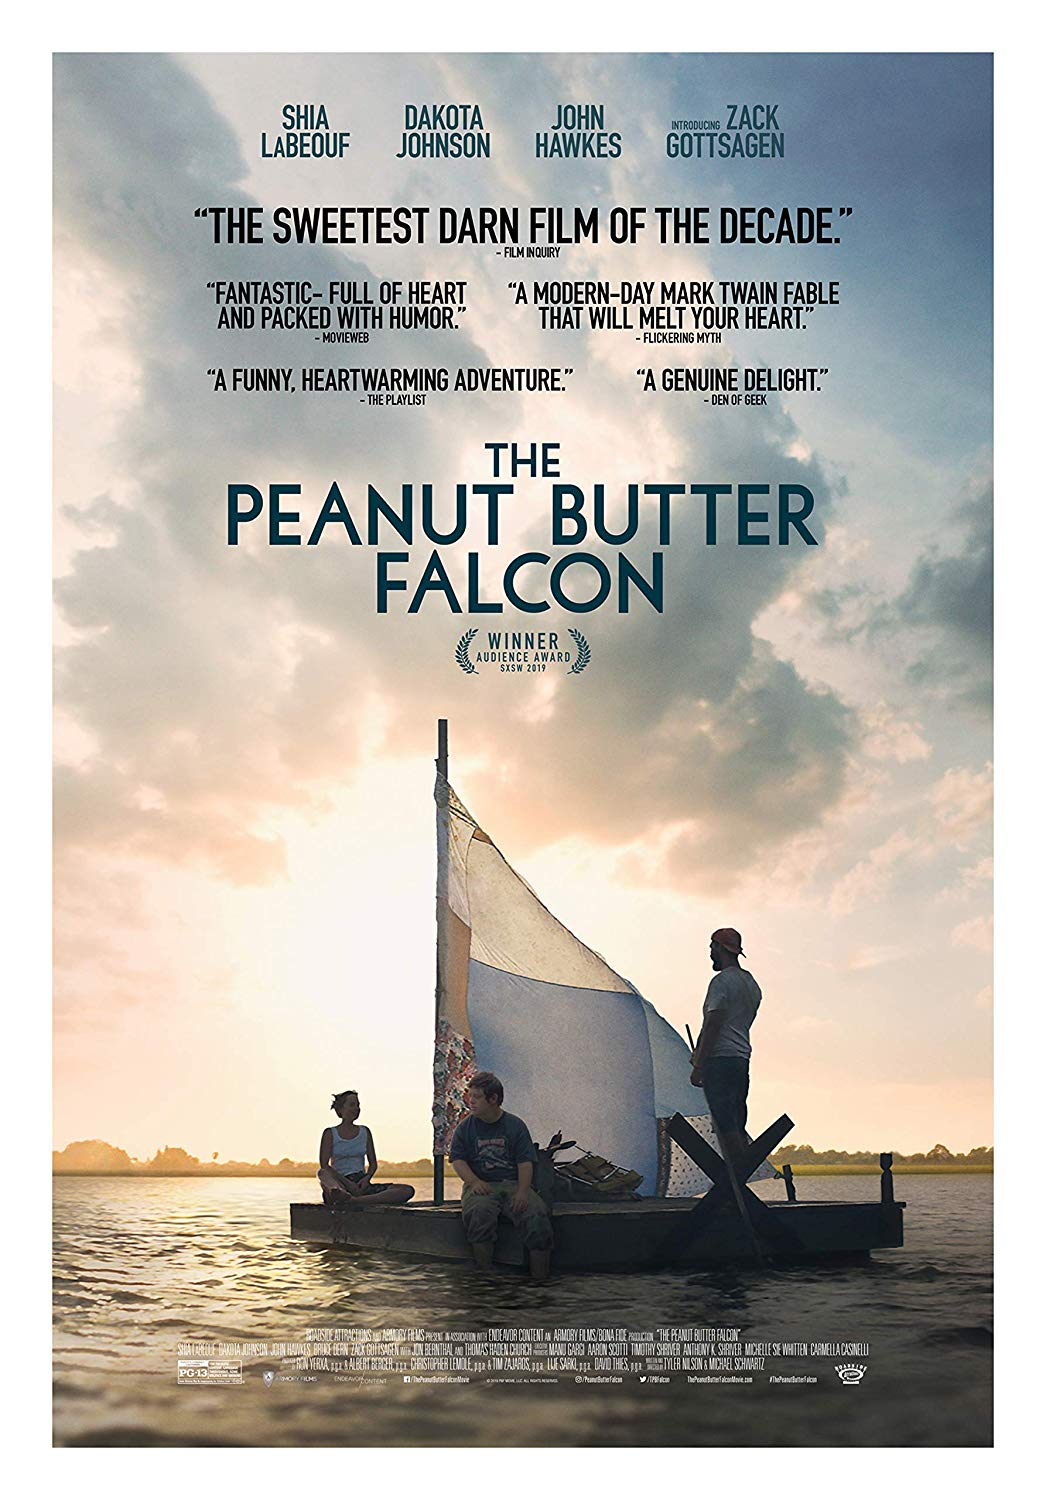 Film review: The Peanut Butter Falcon